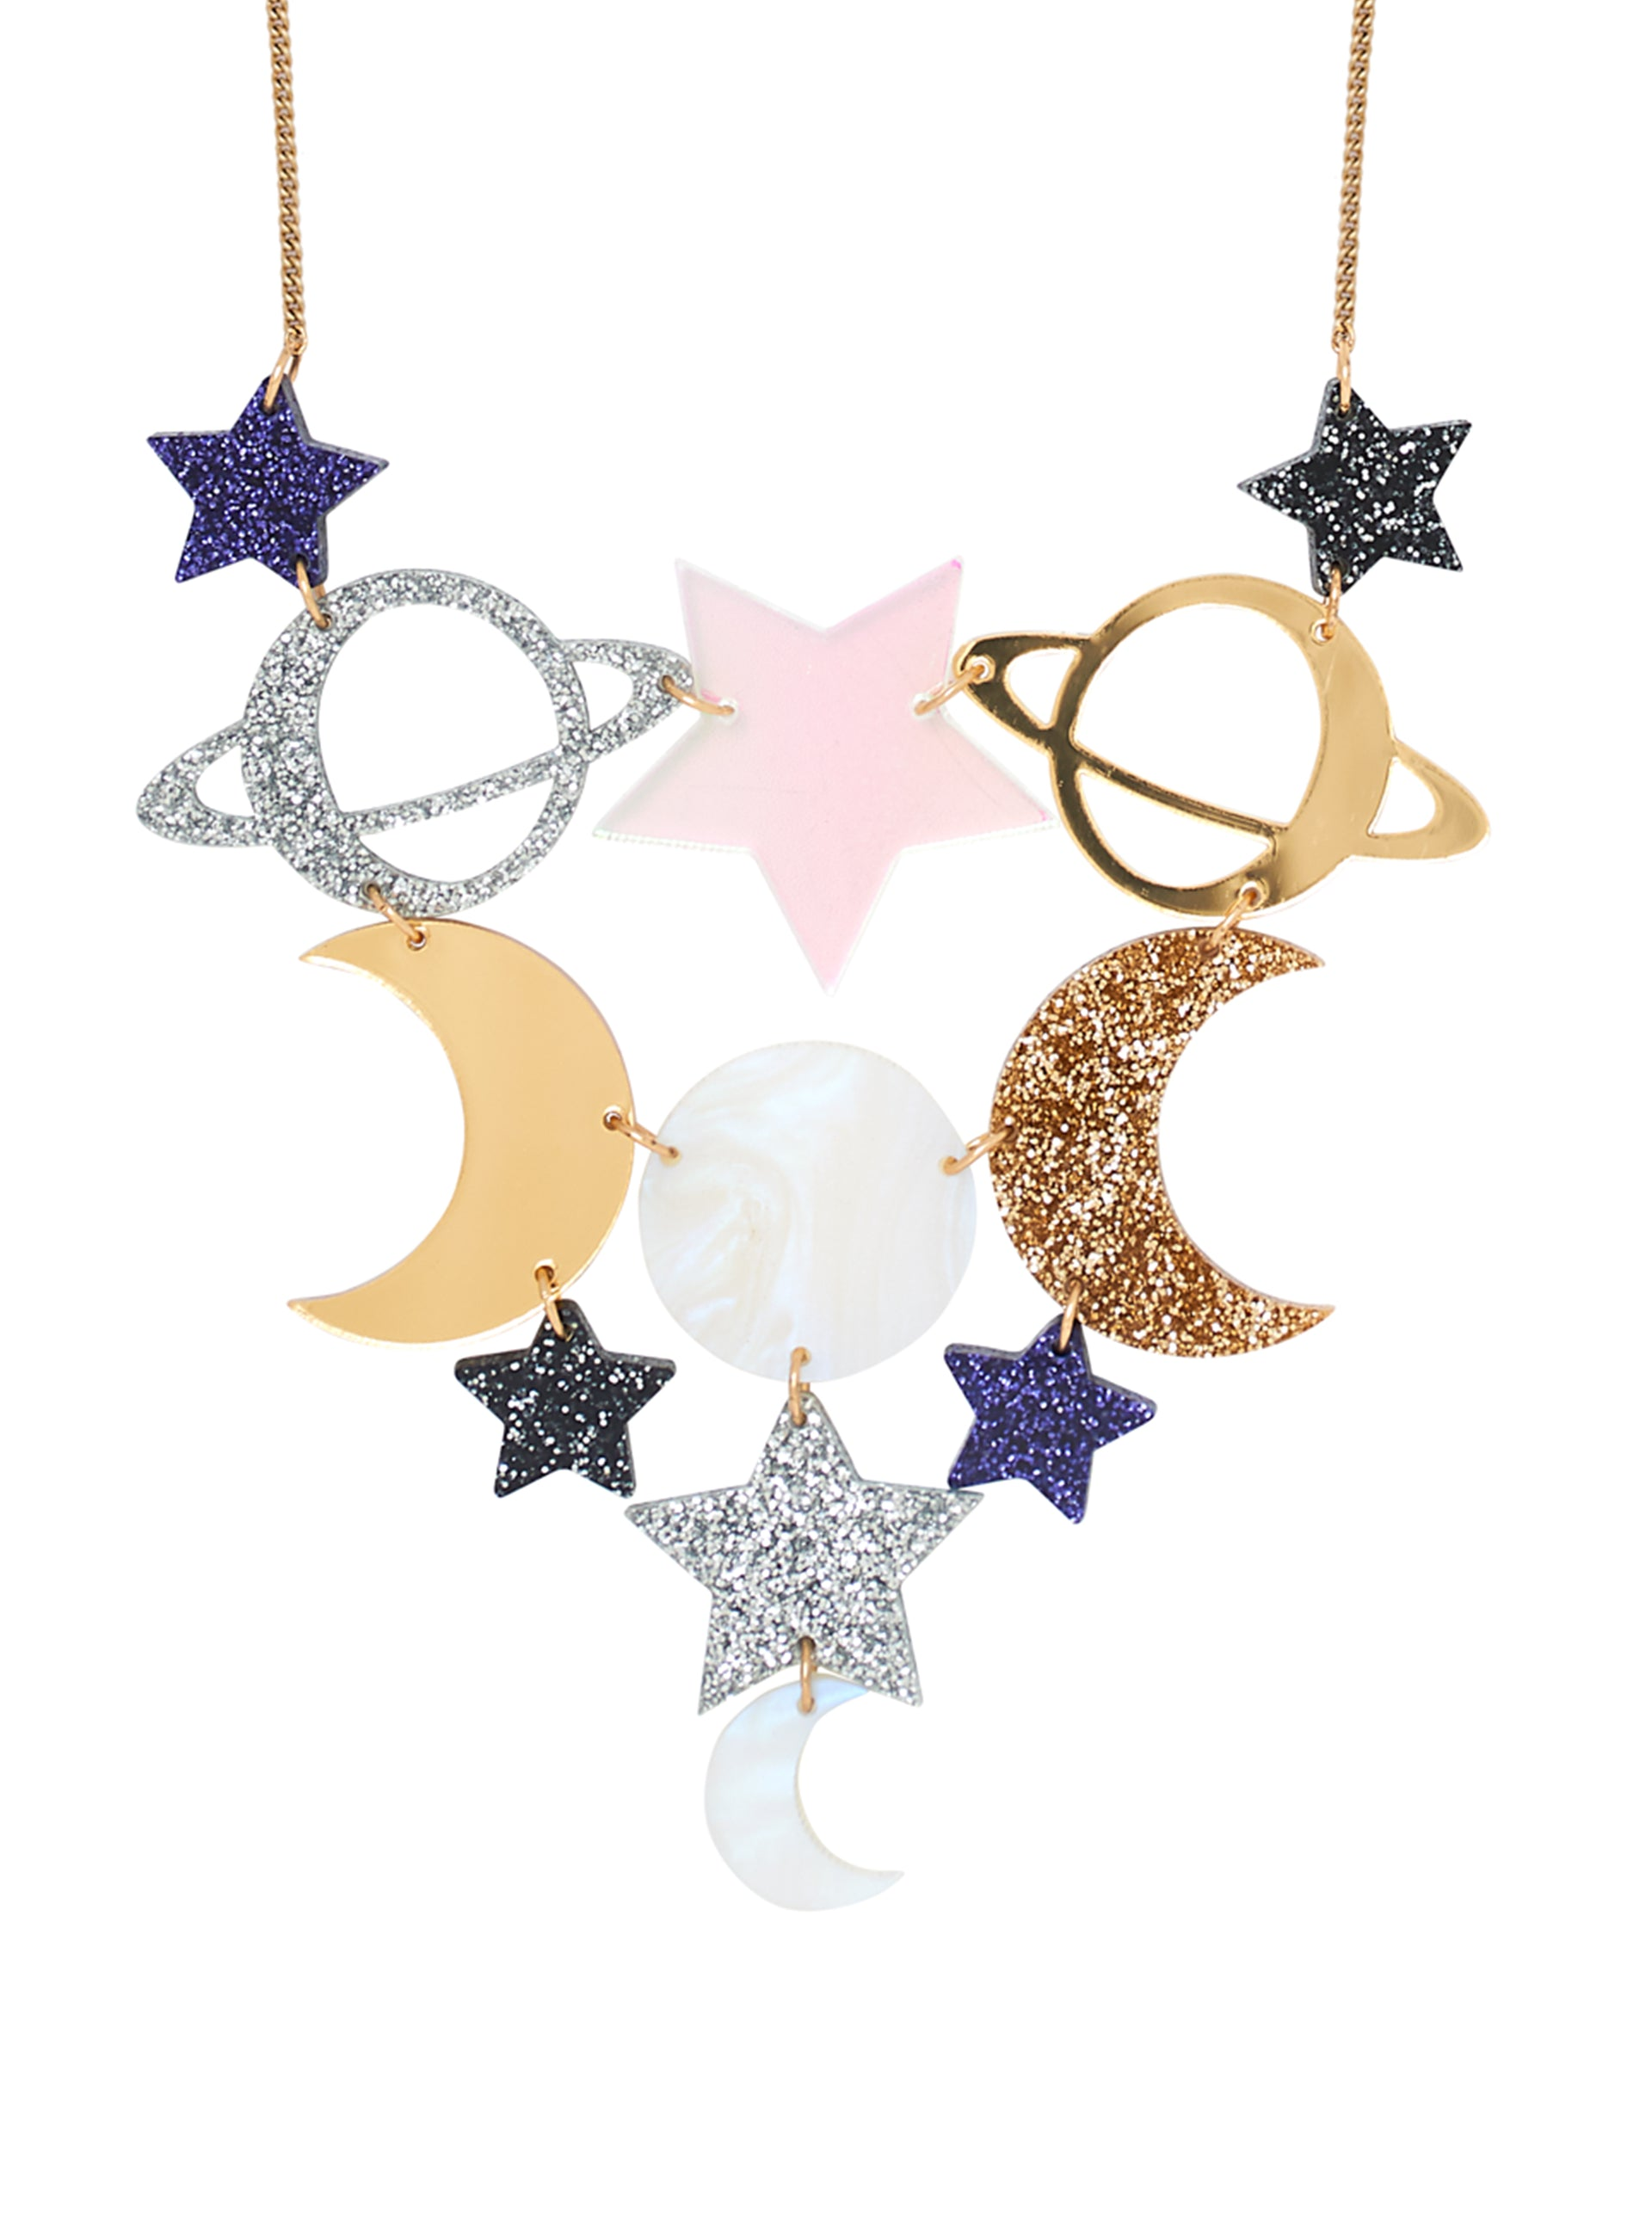 Astral Planet Statement Necklace